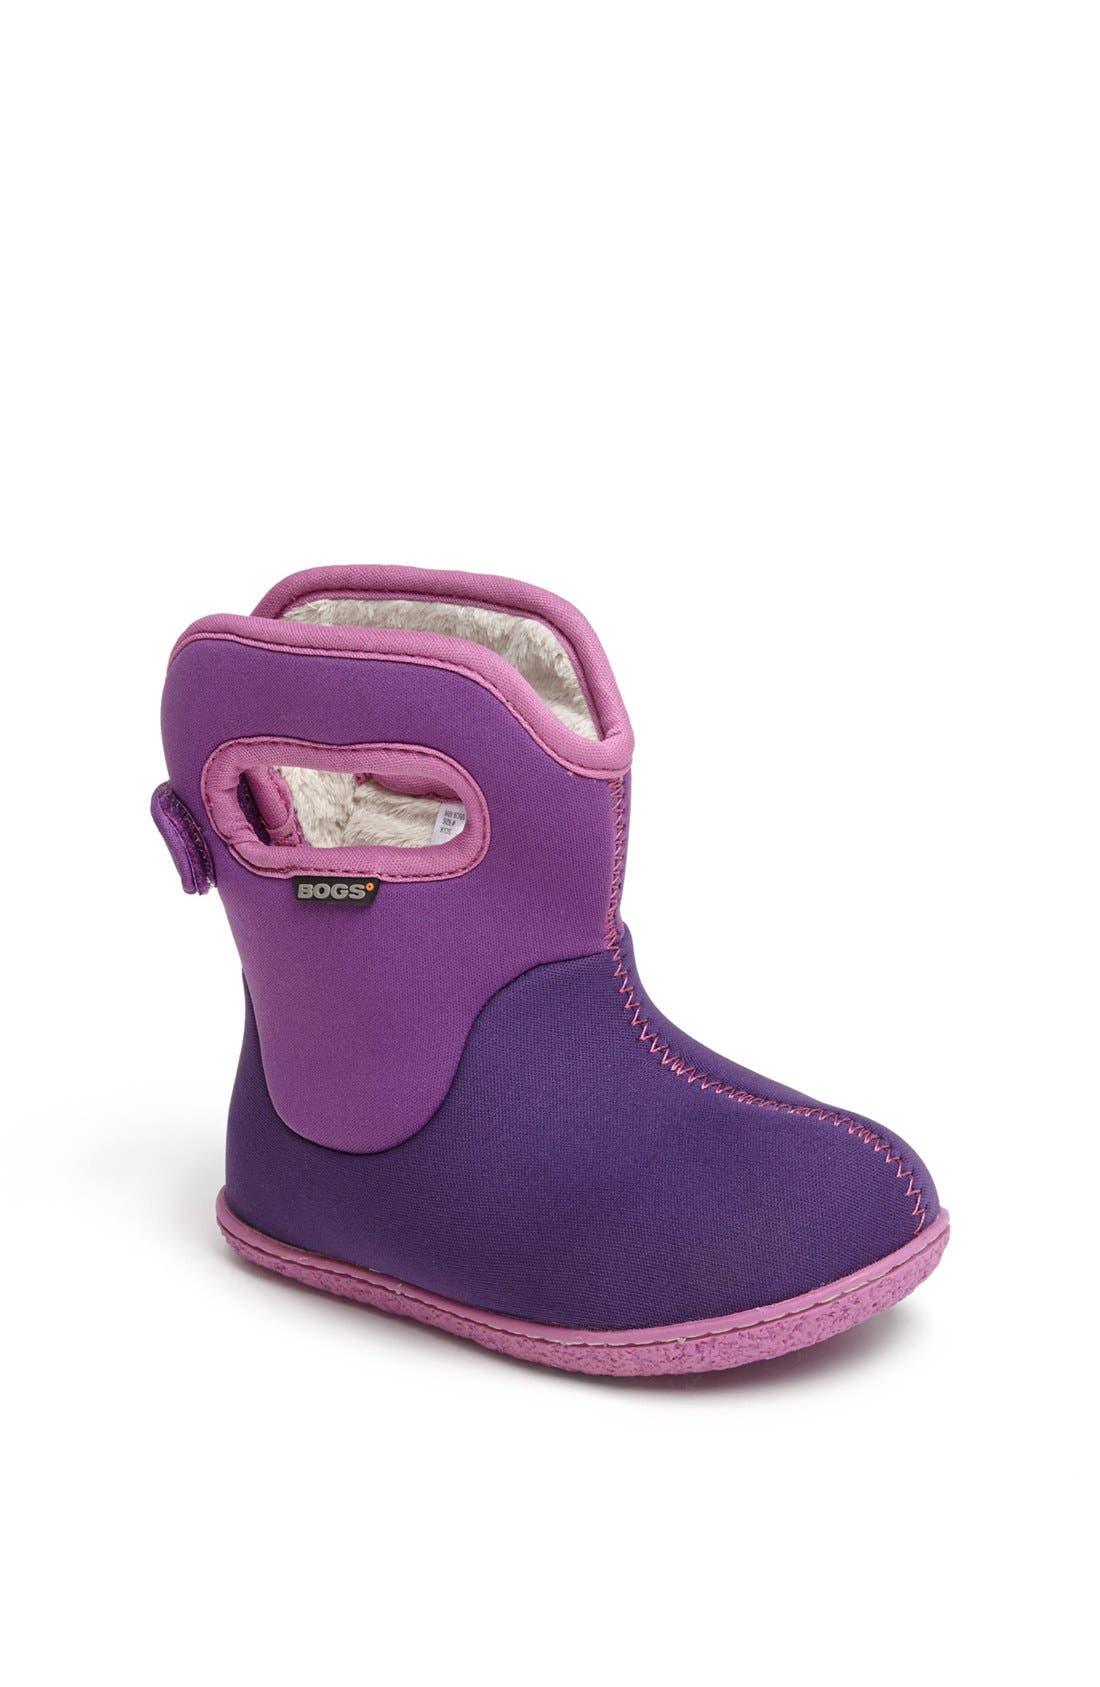 Main Image - Bogs 'Baby Bogs' Waterproof Boot (Baby, Walker & Toddler)